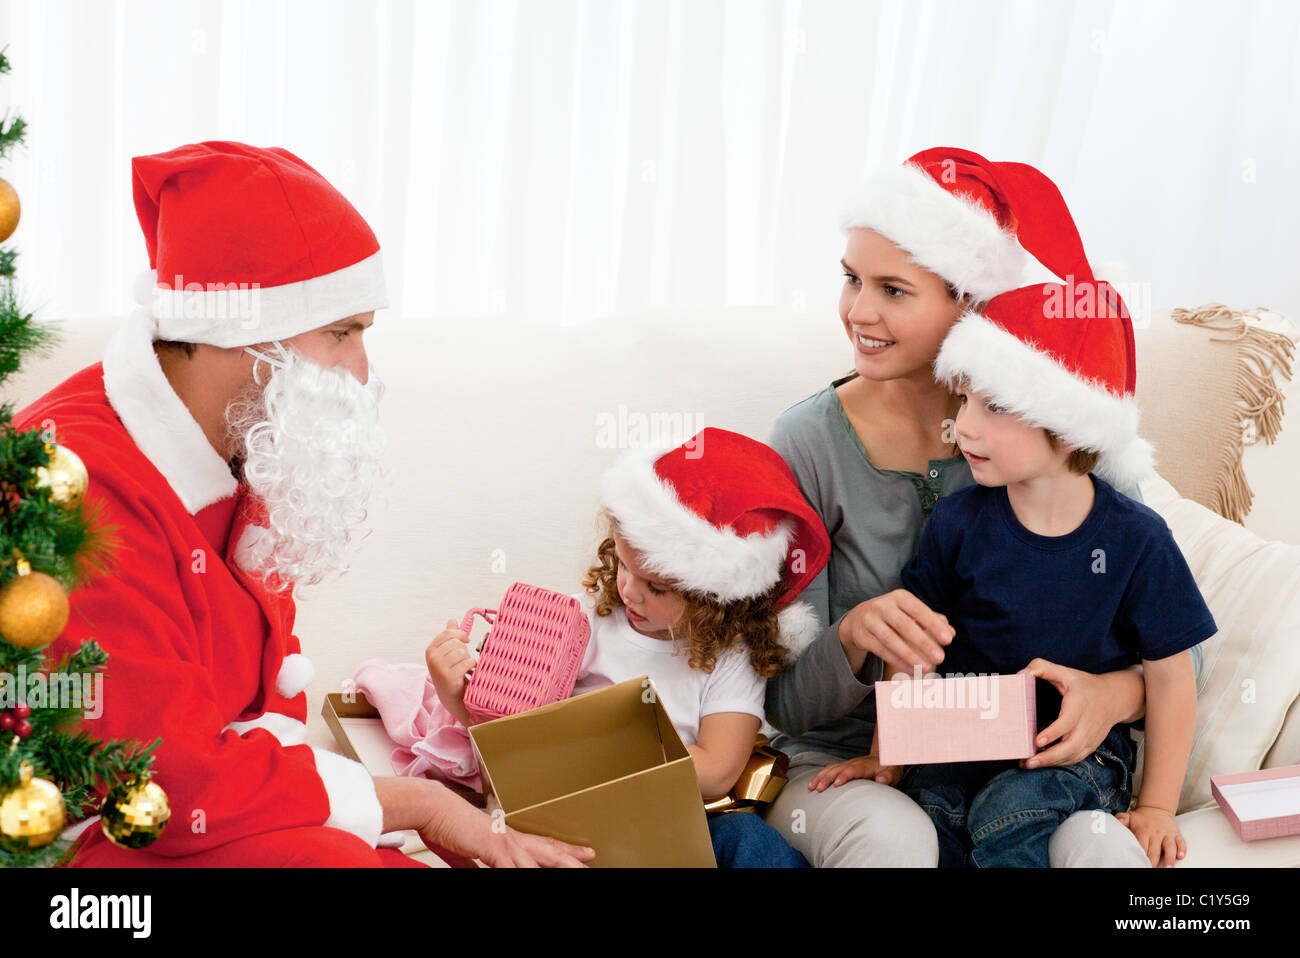 Santa Giving Presents To His Children In The Living Room Stock Photo Royalty Free Image